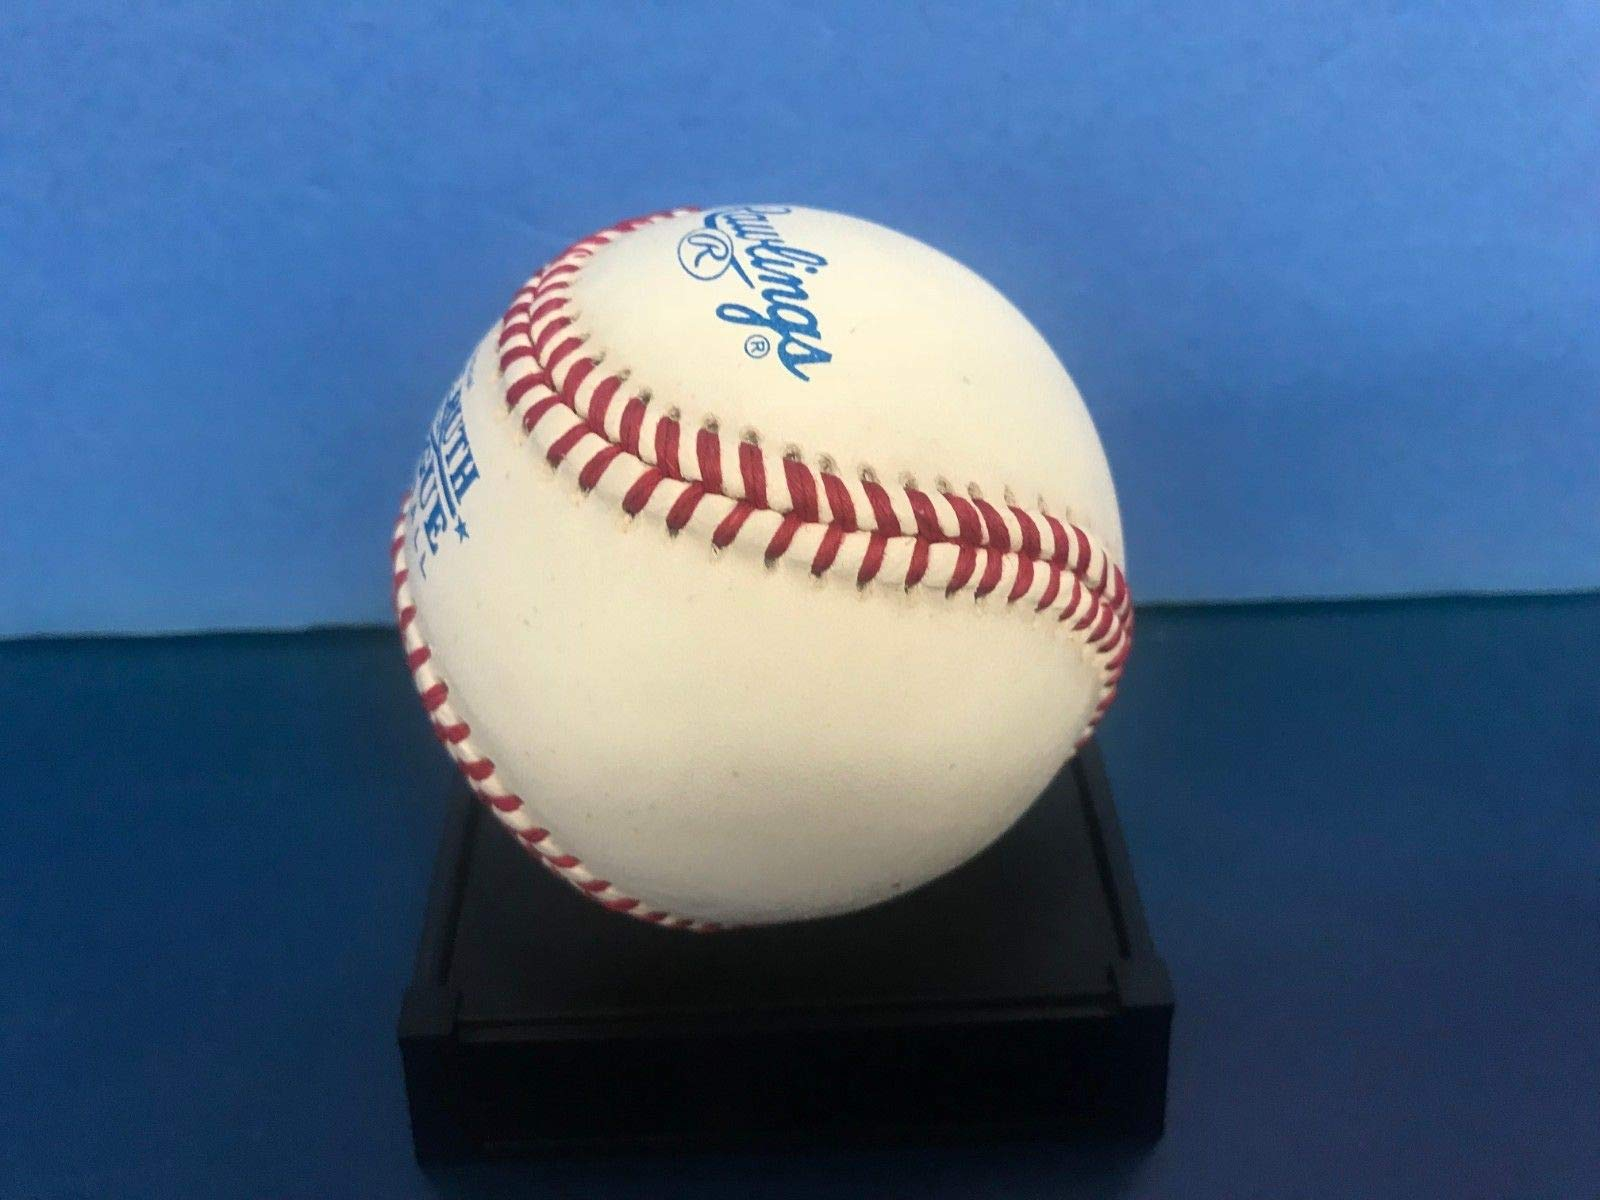 Tony Gwynn Signed Autographed on Babe Ruth League Baseball